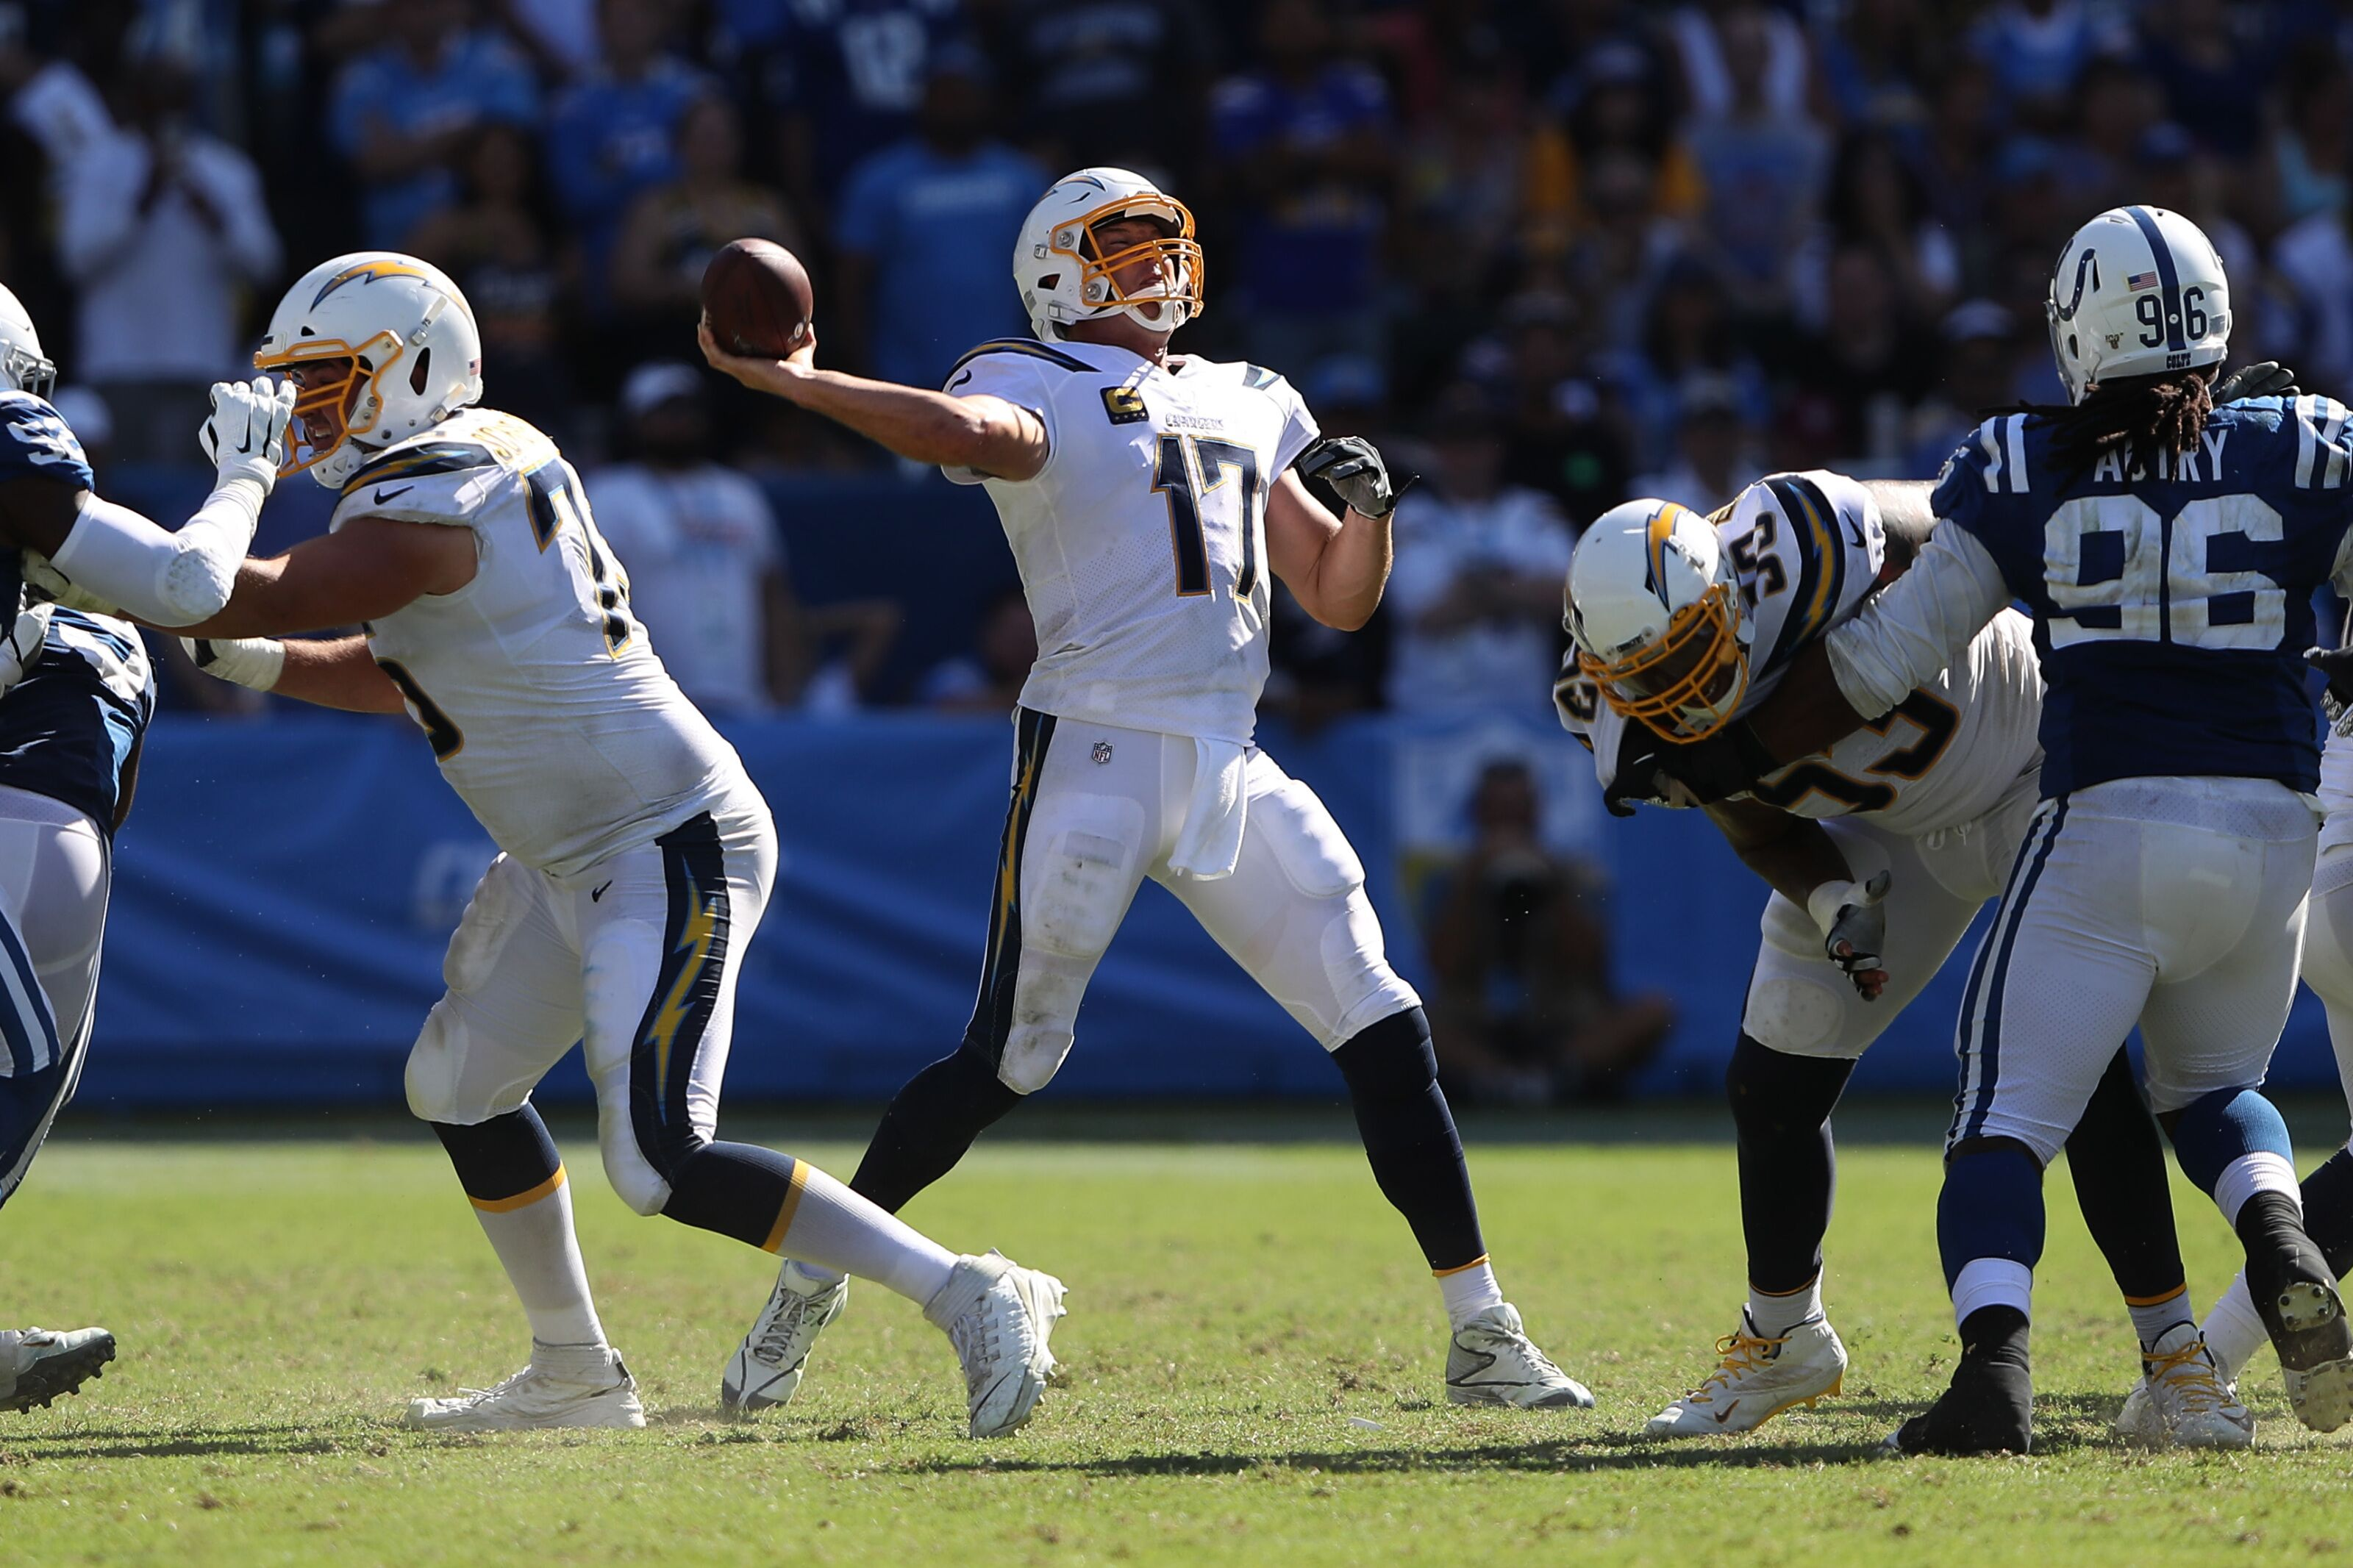 Packers fans should also support Chargers, Broncos in Week 2